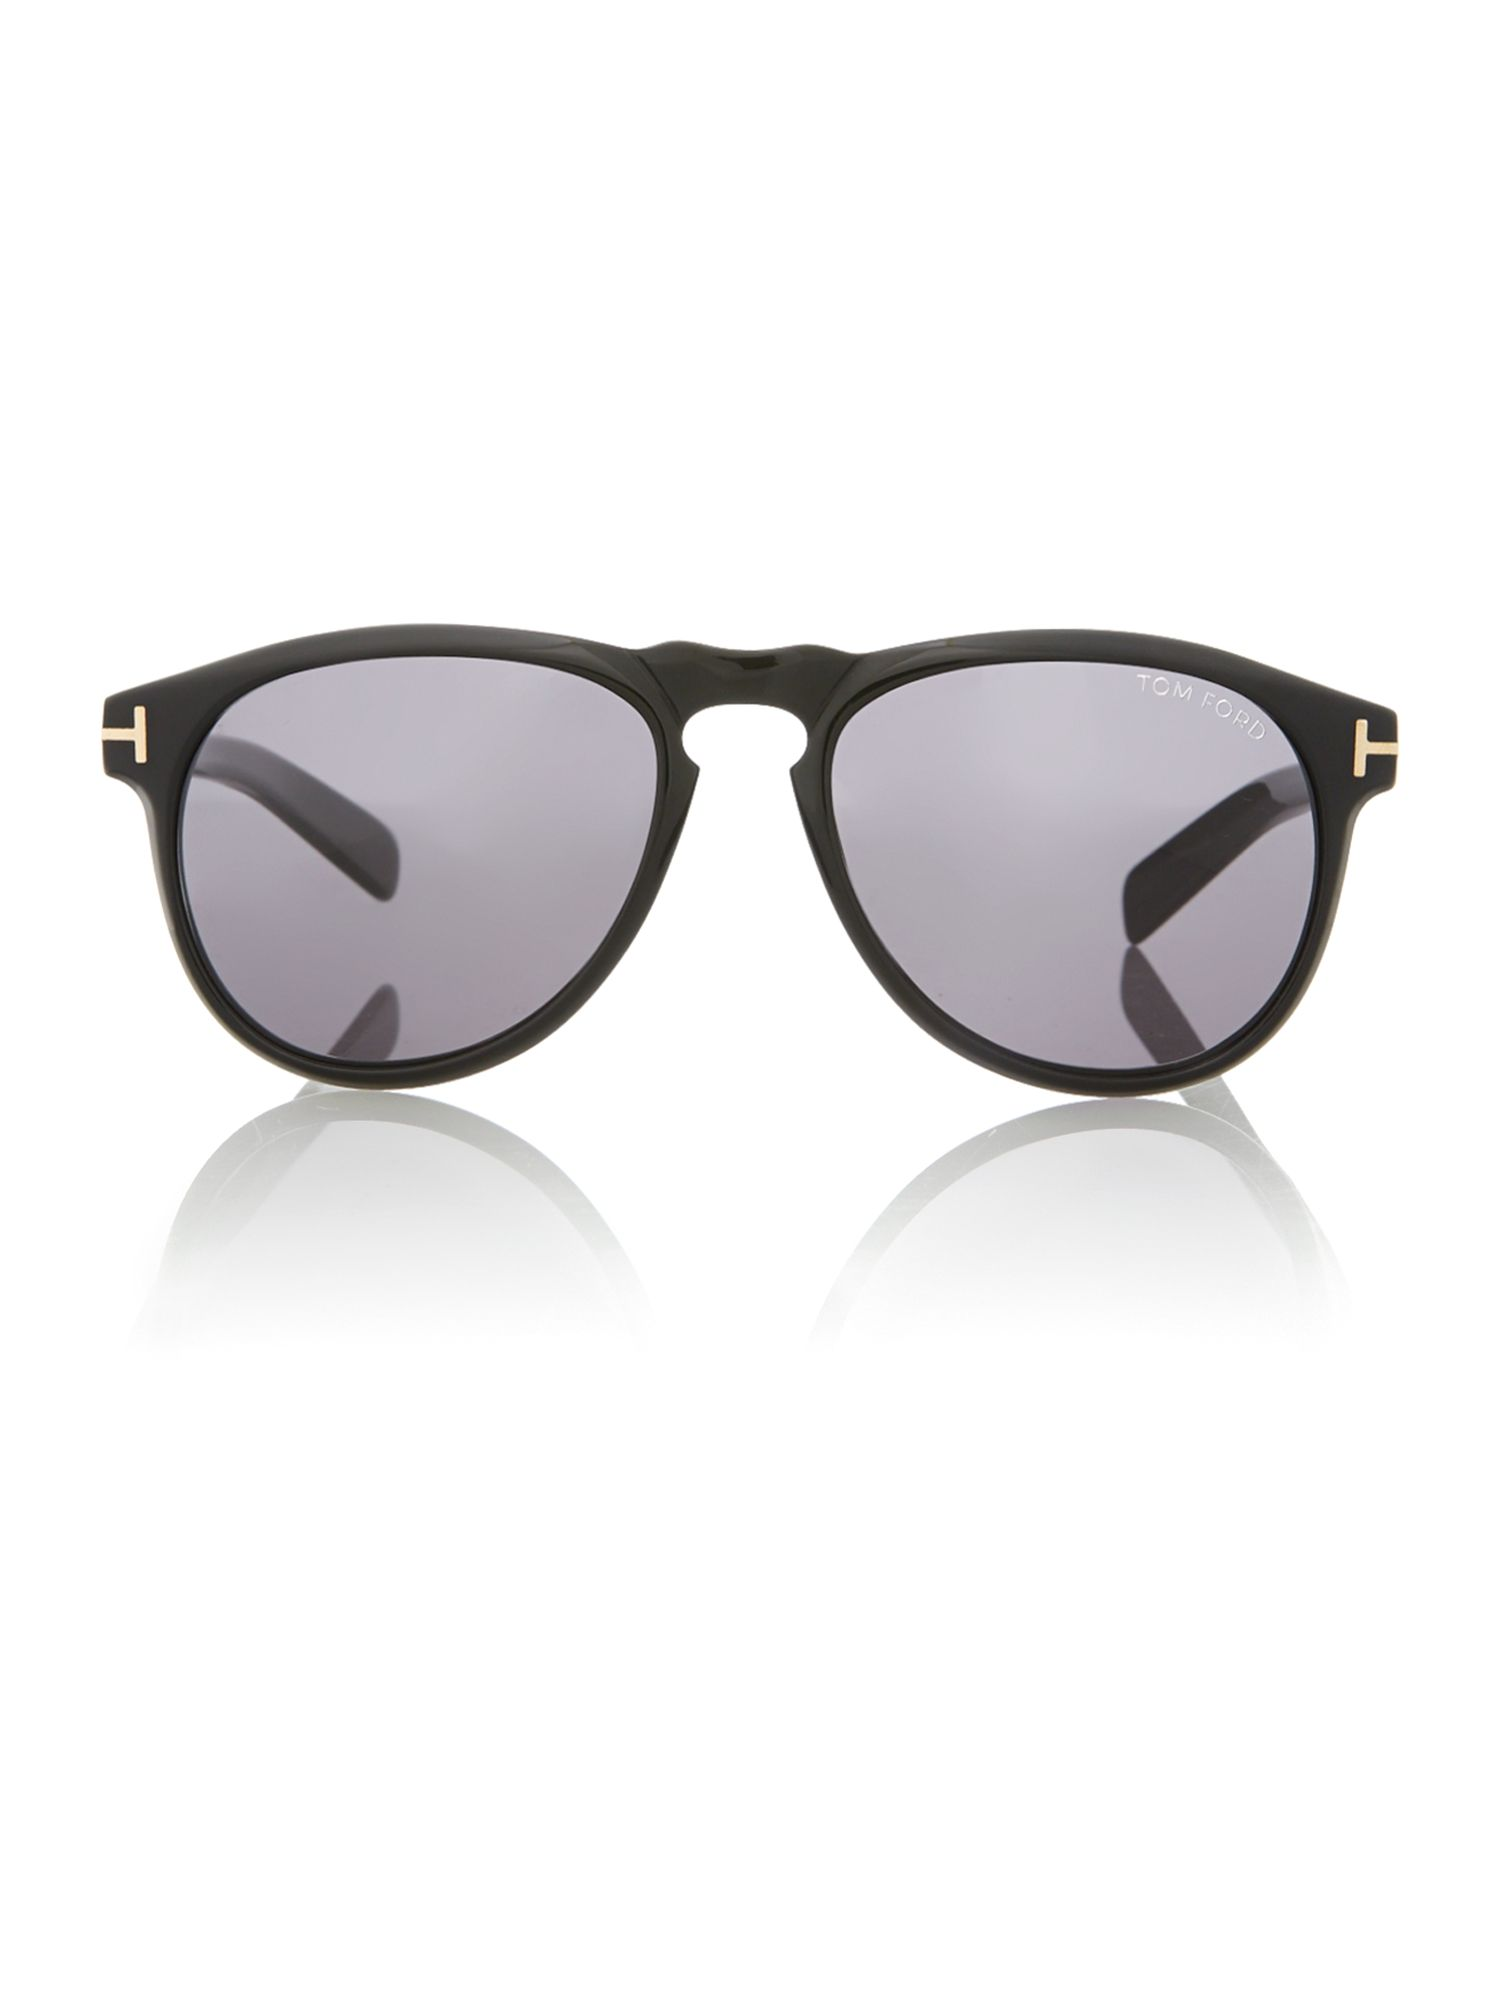 Ladies FT0291 black flynn sunglasses